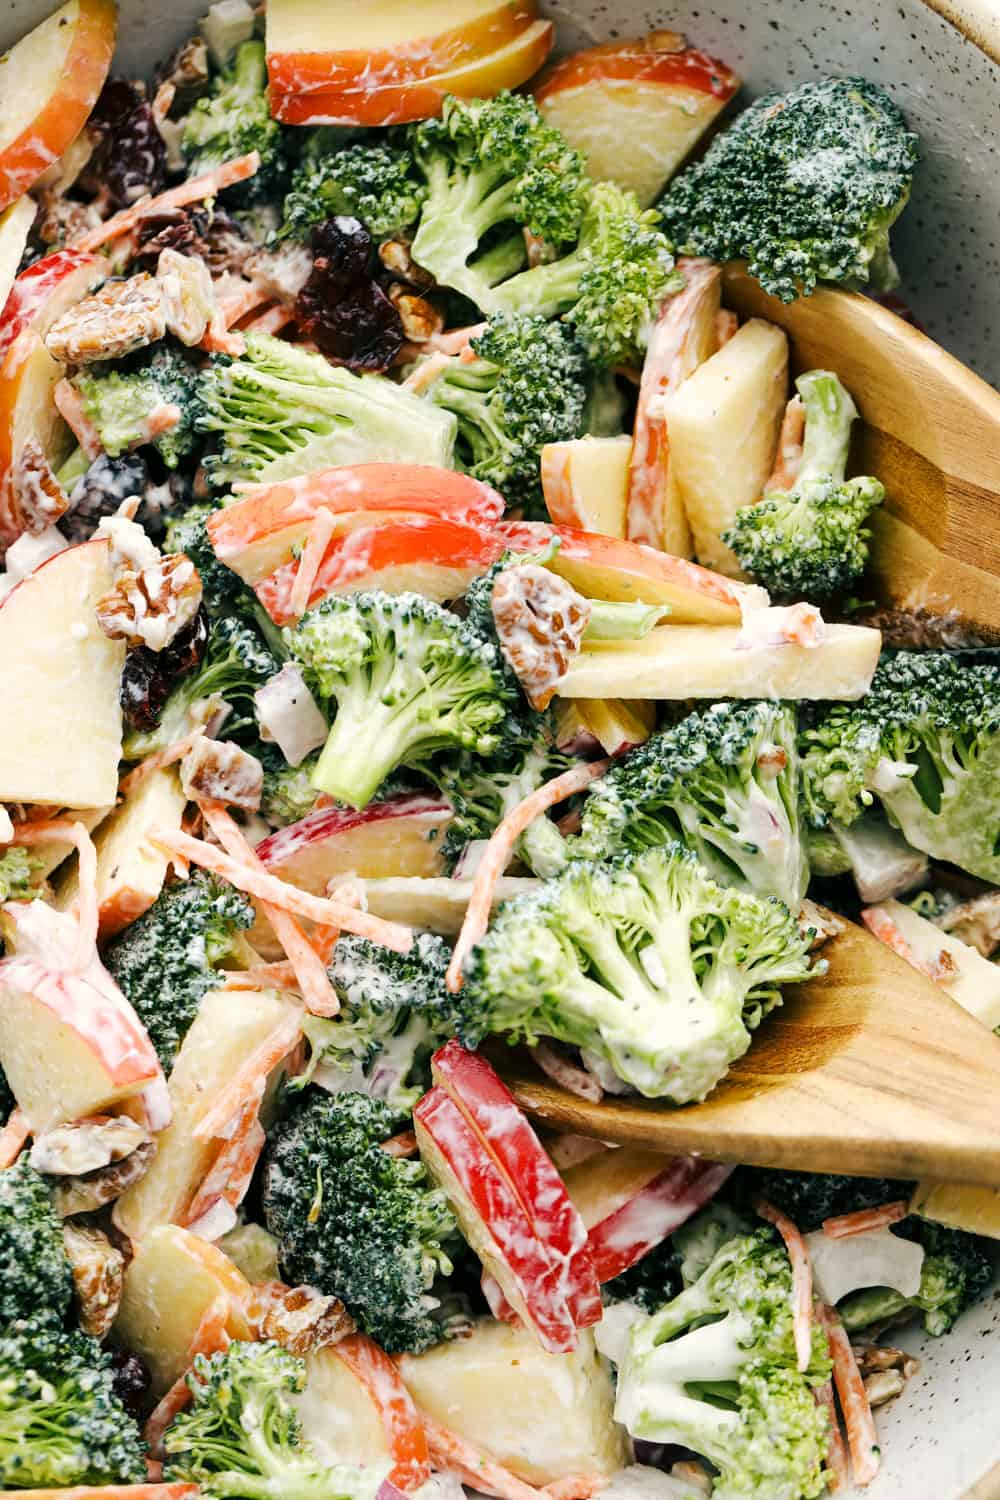 Upclose picture of broccoli apple salad with pecans, raisins and dressing.